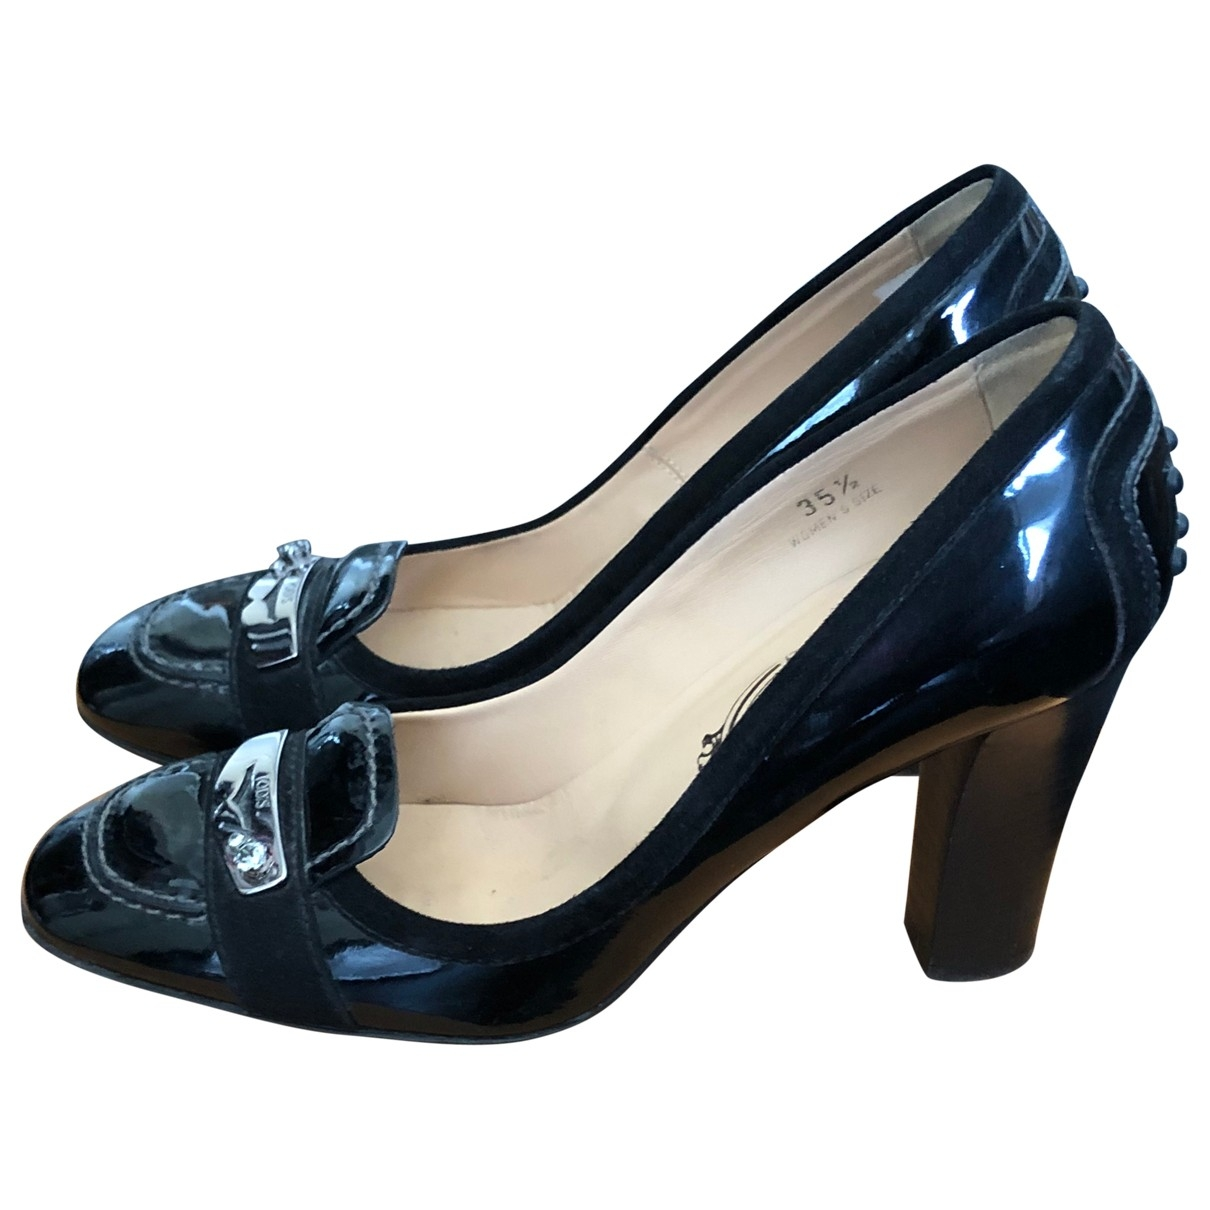 Tod's \N Black Patent leather Heels for Women 35.5 IT